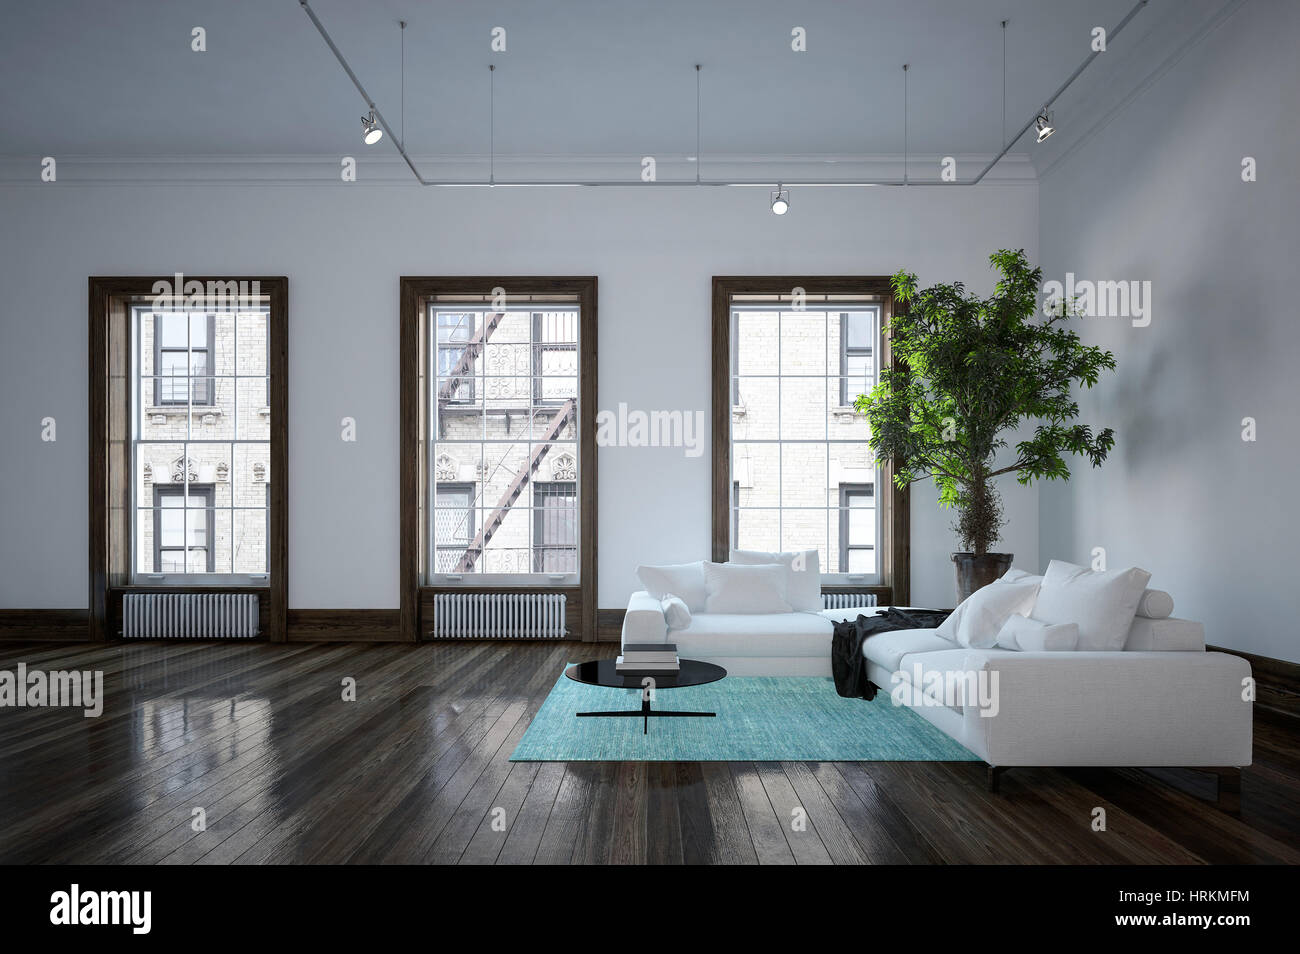 Urban Living Room Decor Minimalist Modern Urban Living Room Interior With Black And White